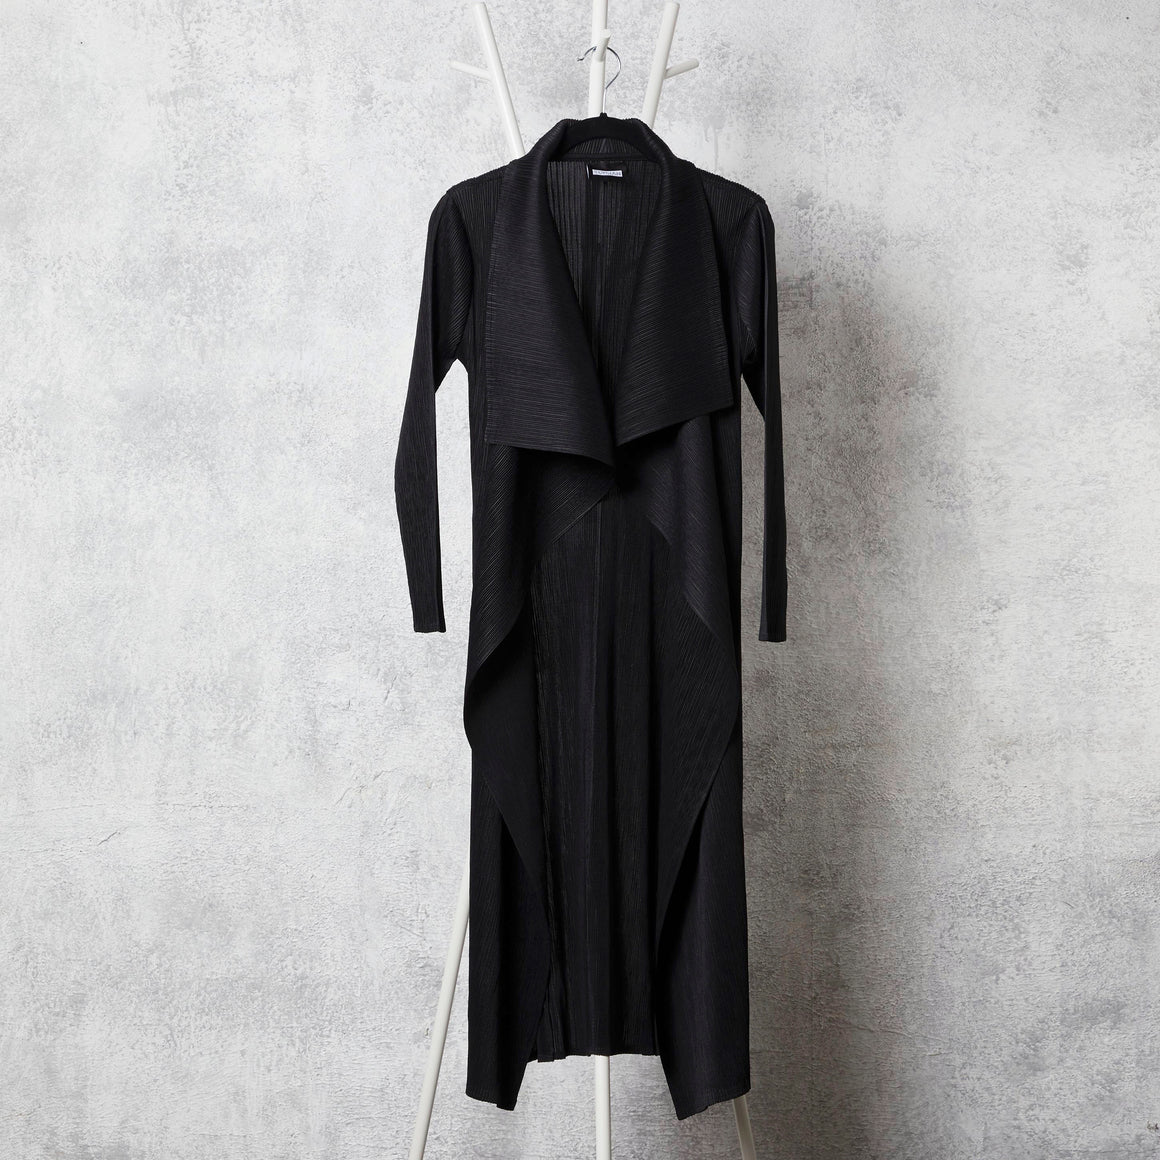 Pleated Overlay - Black